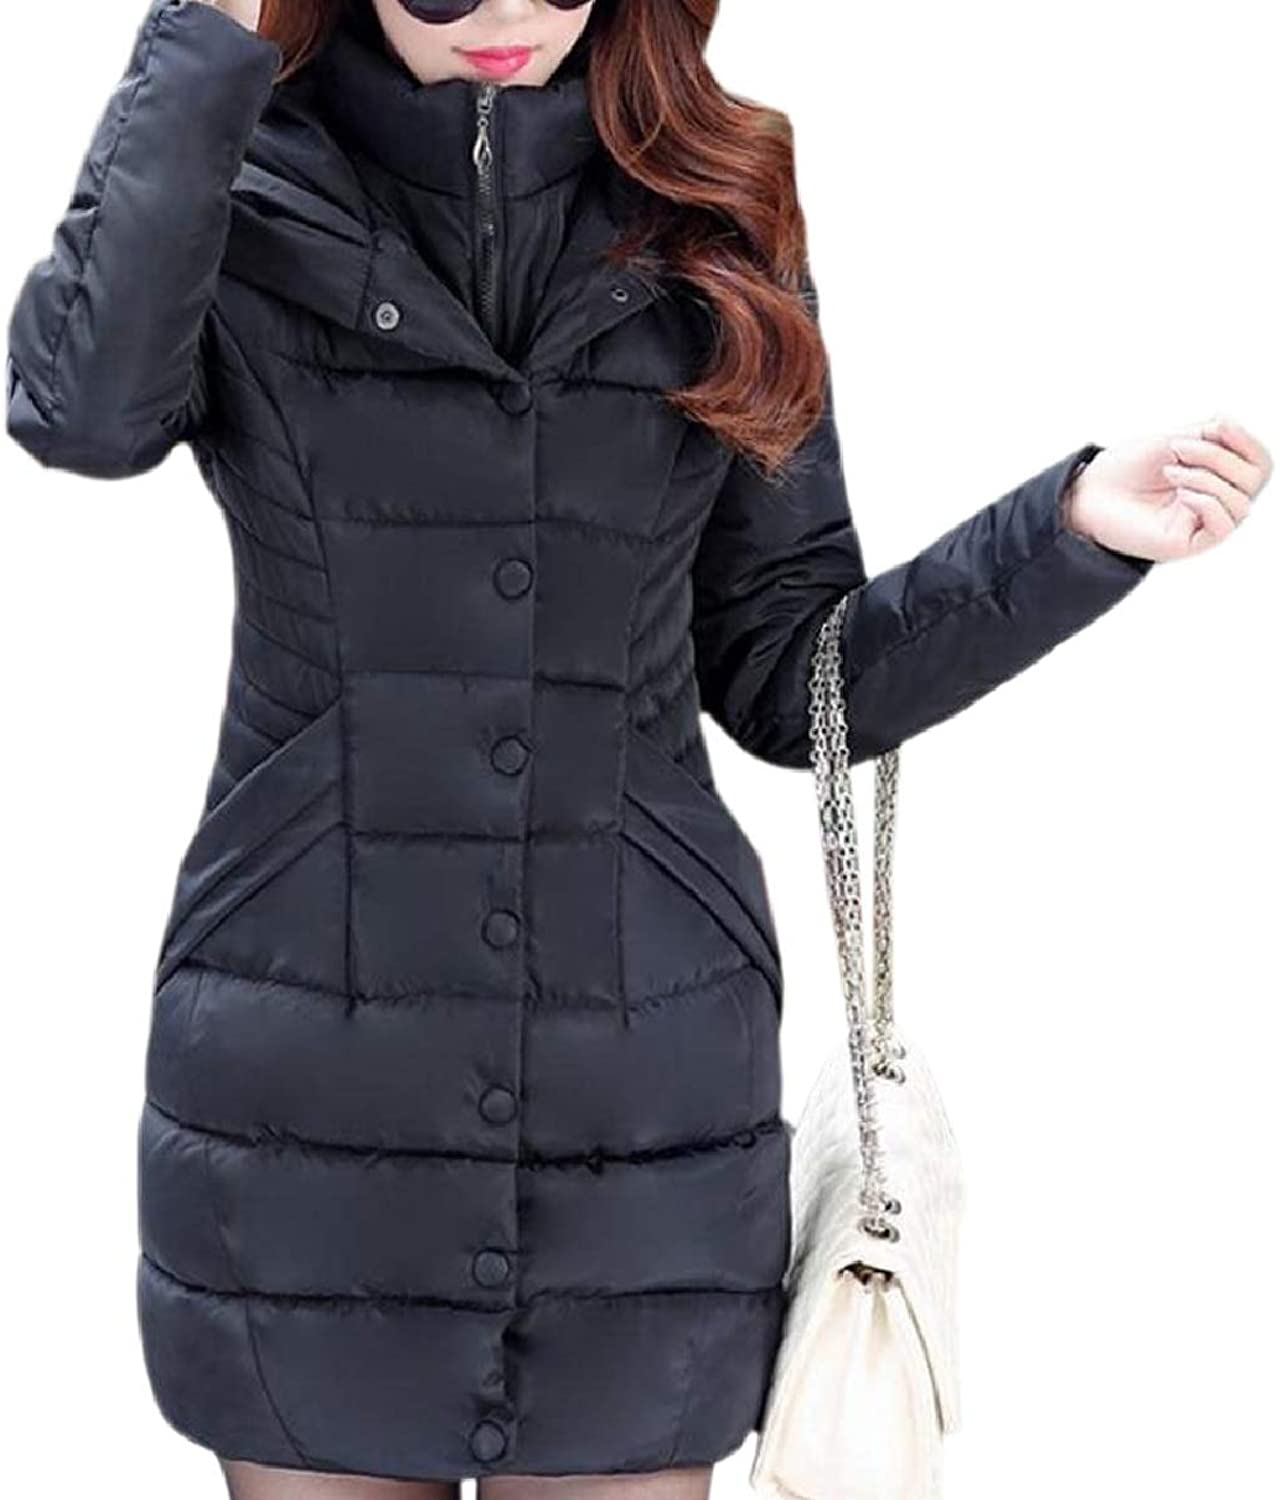 CBTLVSN Women's Quilted Peacoat Warm Fall Winter Outside Hoodies Down Jacket